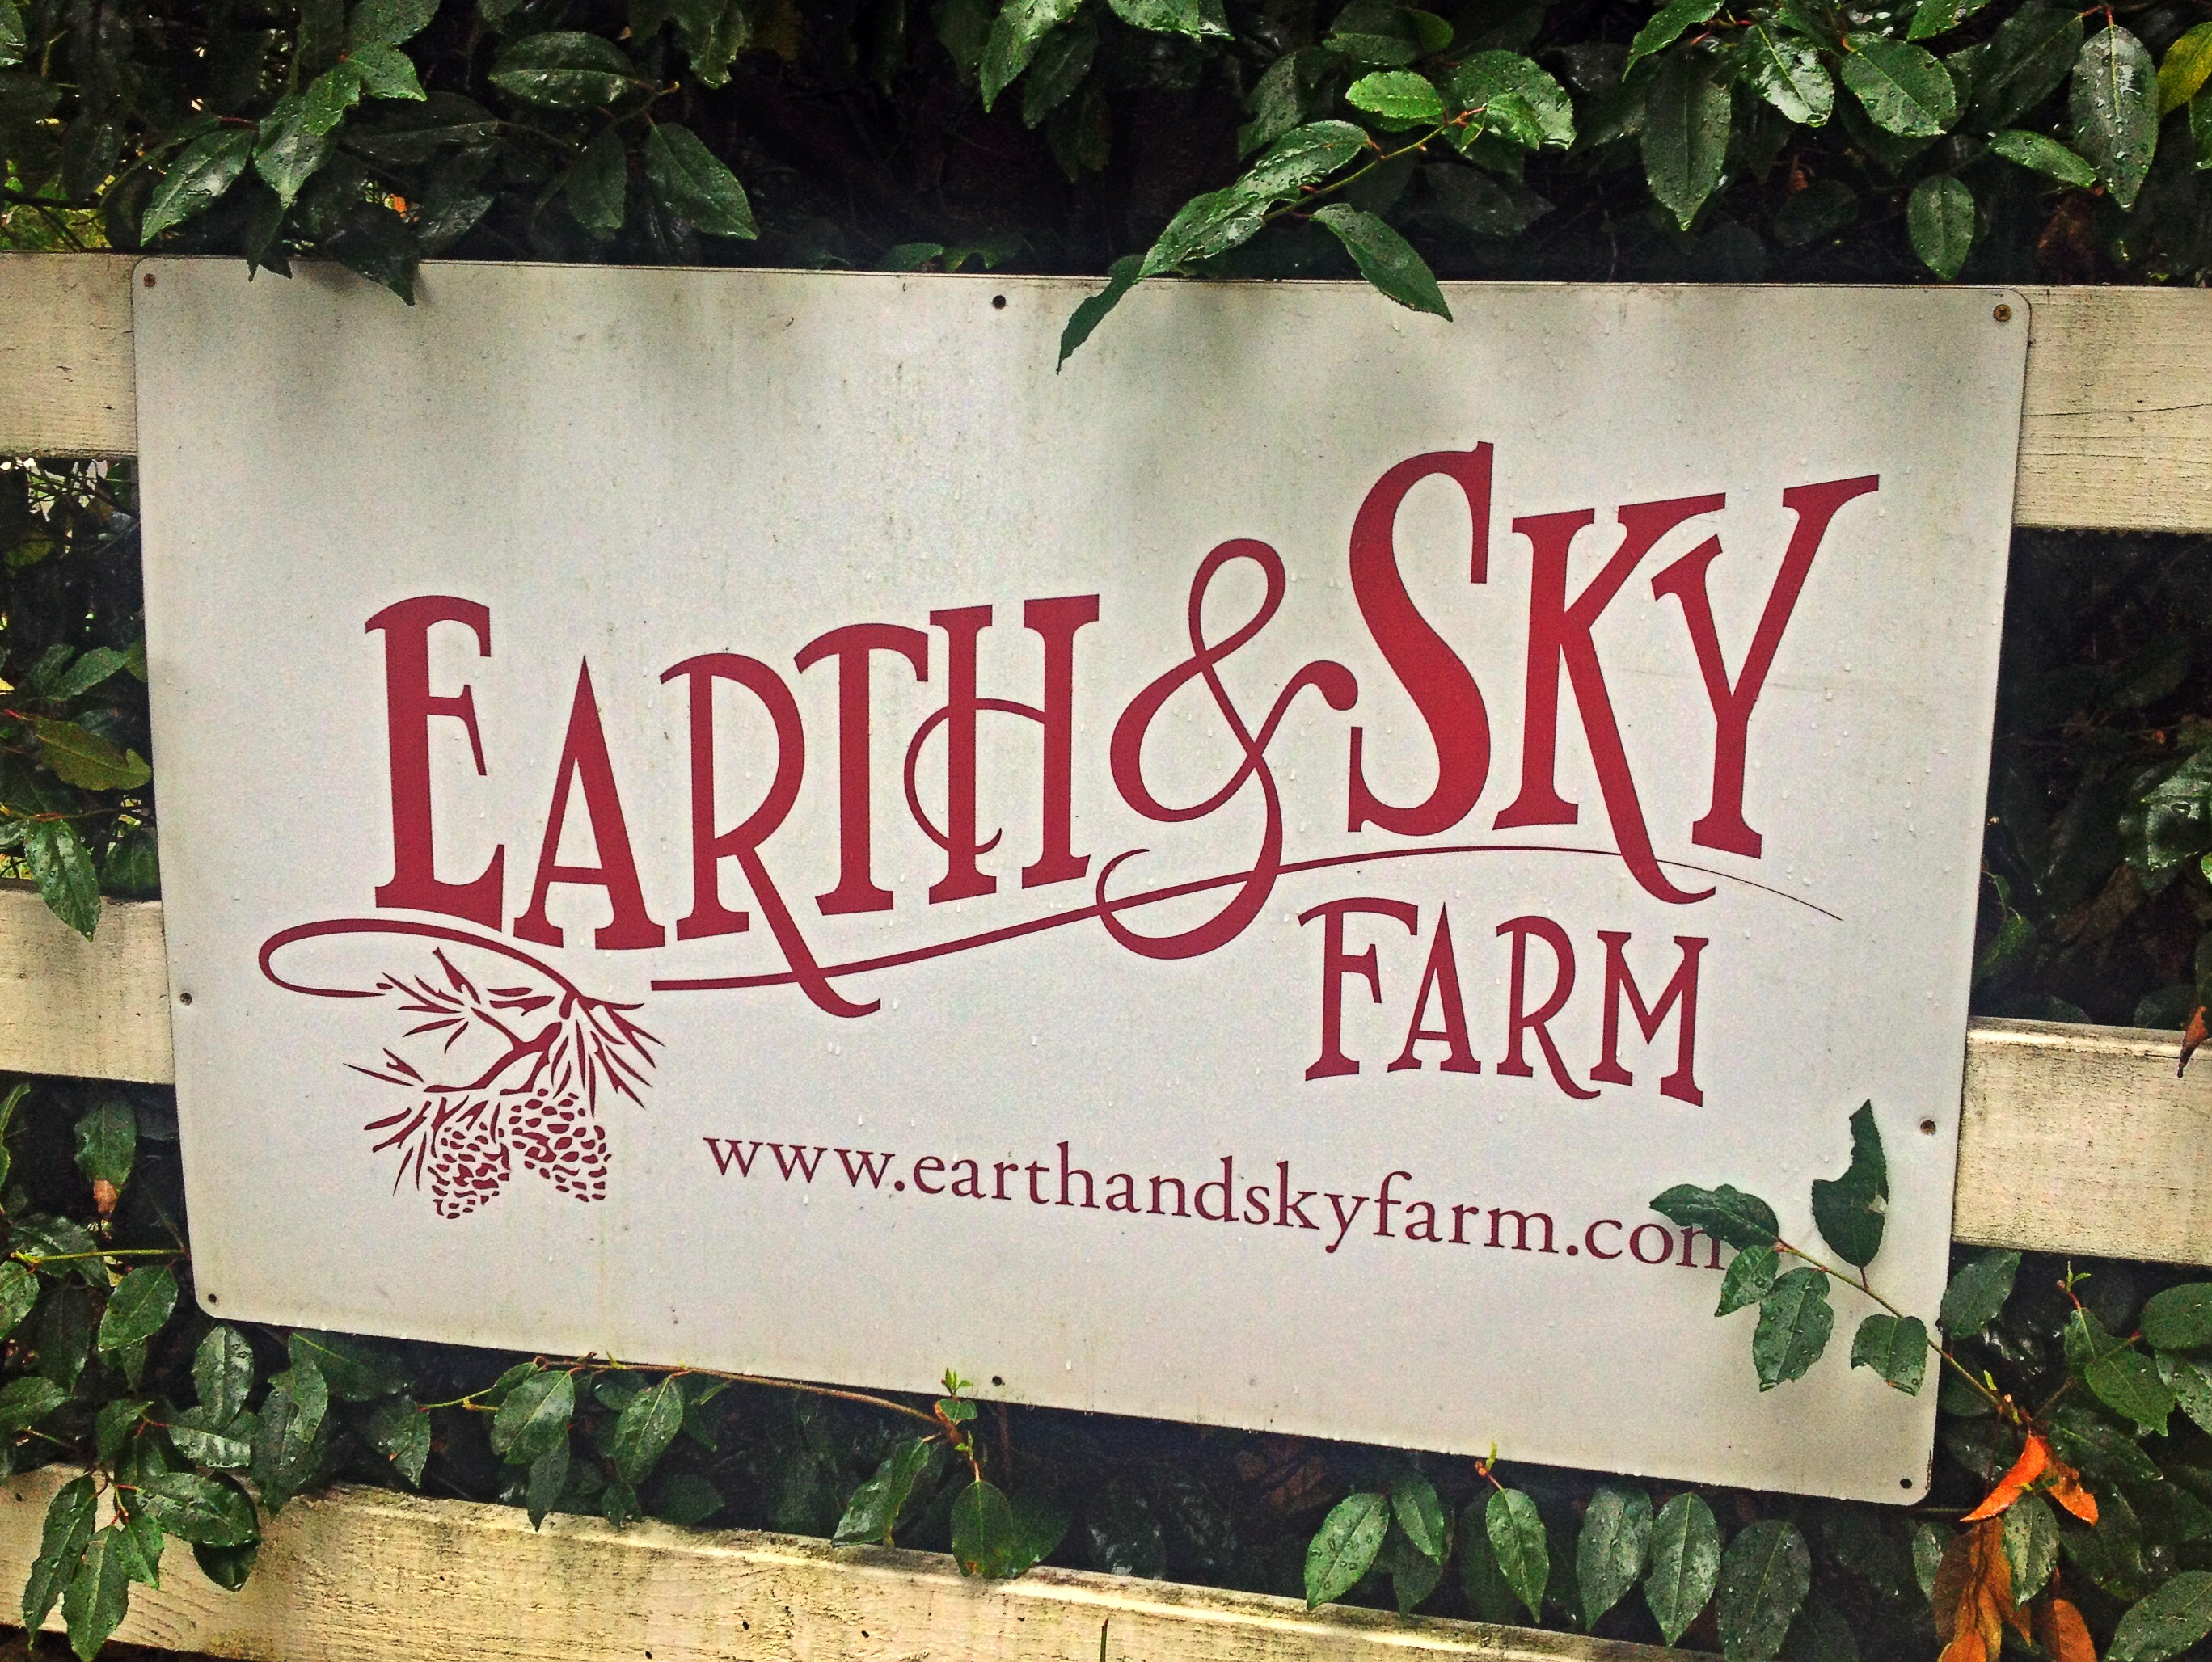 Earth and Sky Farm